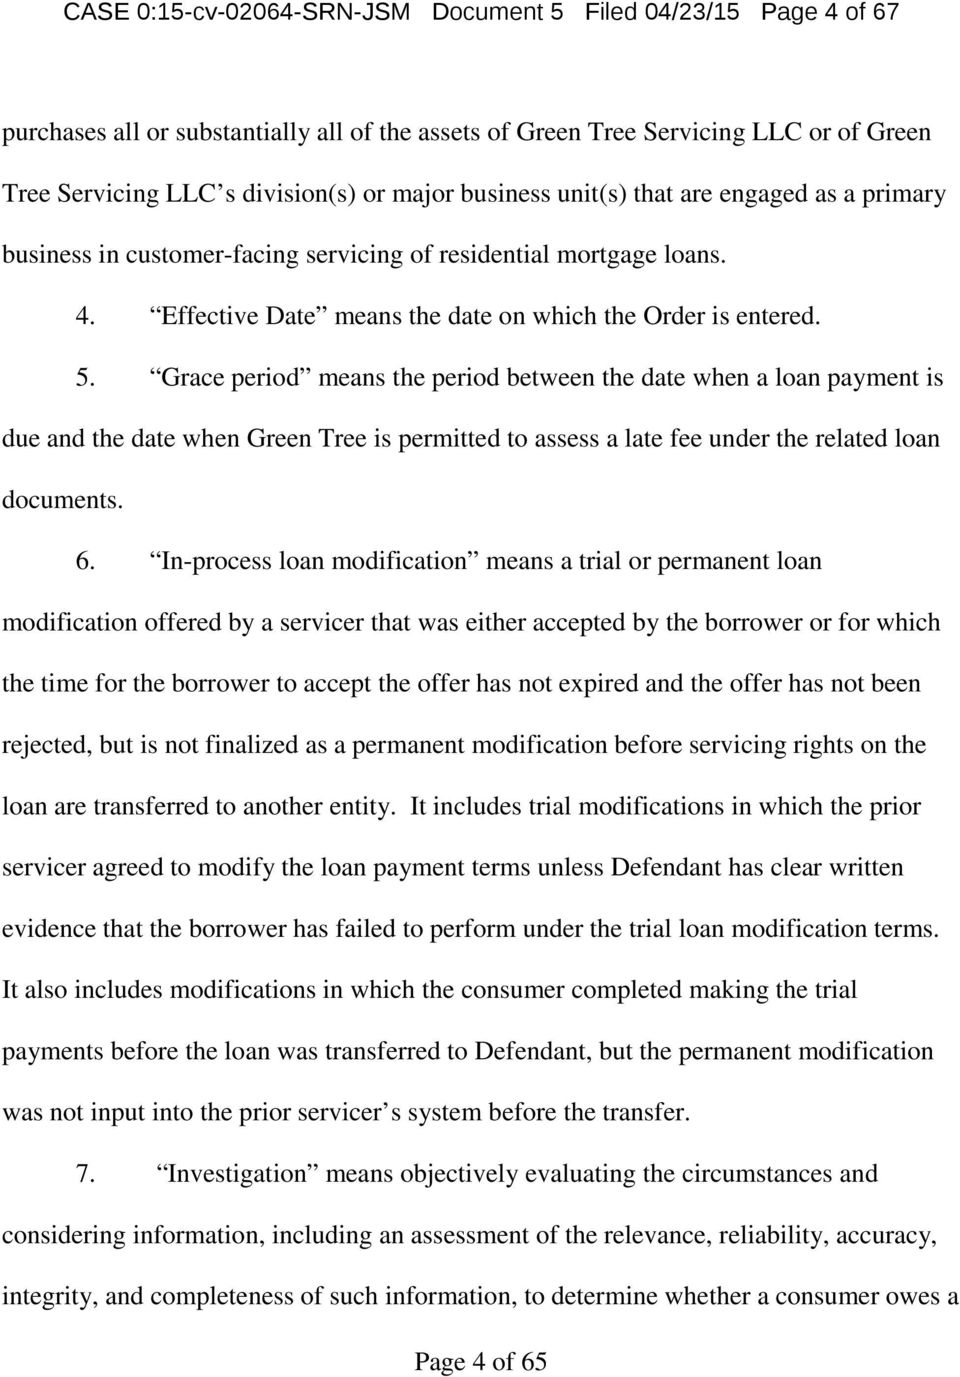 United States District Court Of Minnesota Pdf Wiring Instructions For Ocwen Loan Servicing Grace Period Means The Between Date When A Payment Is Due And